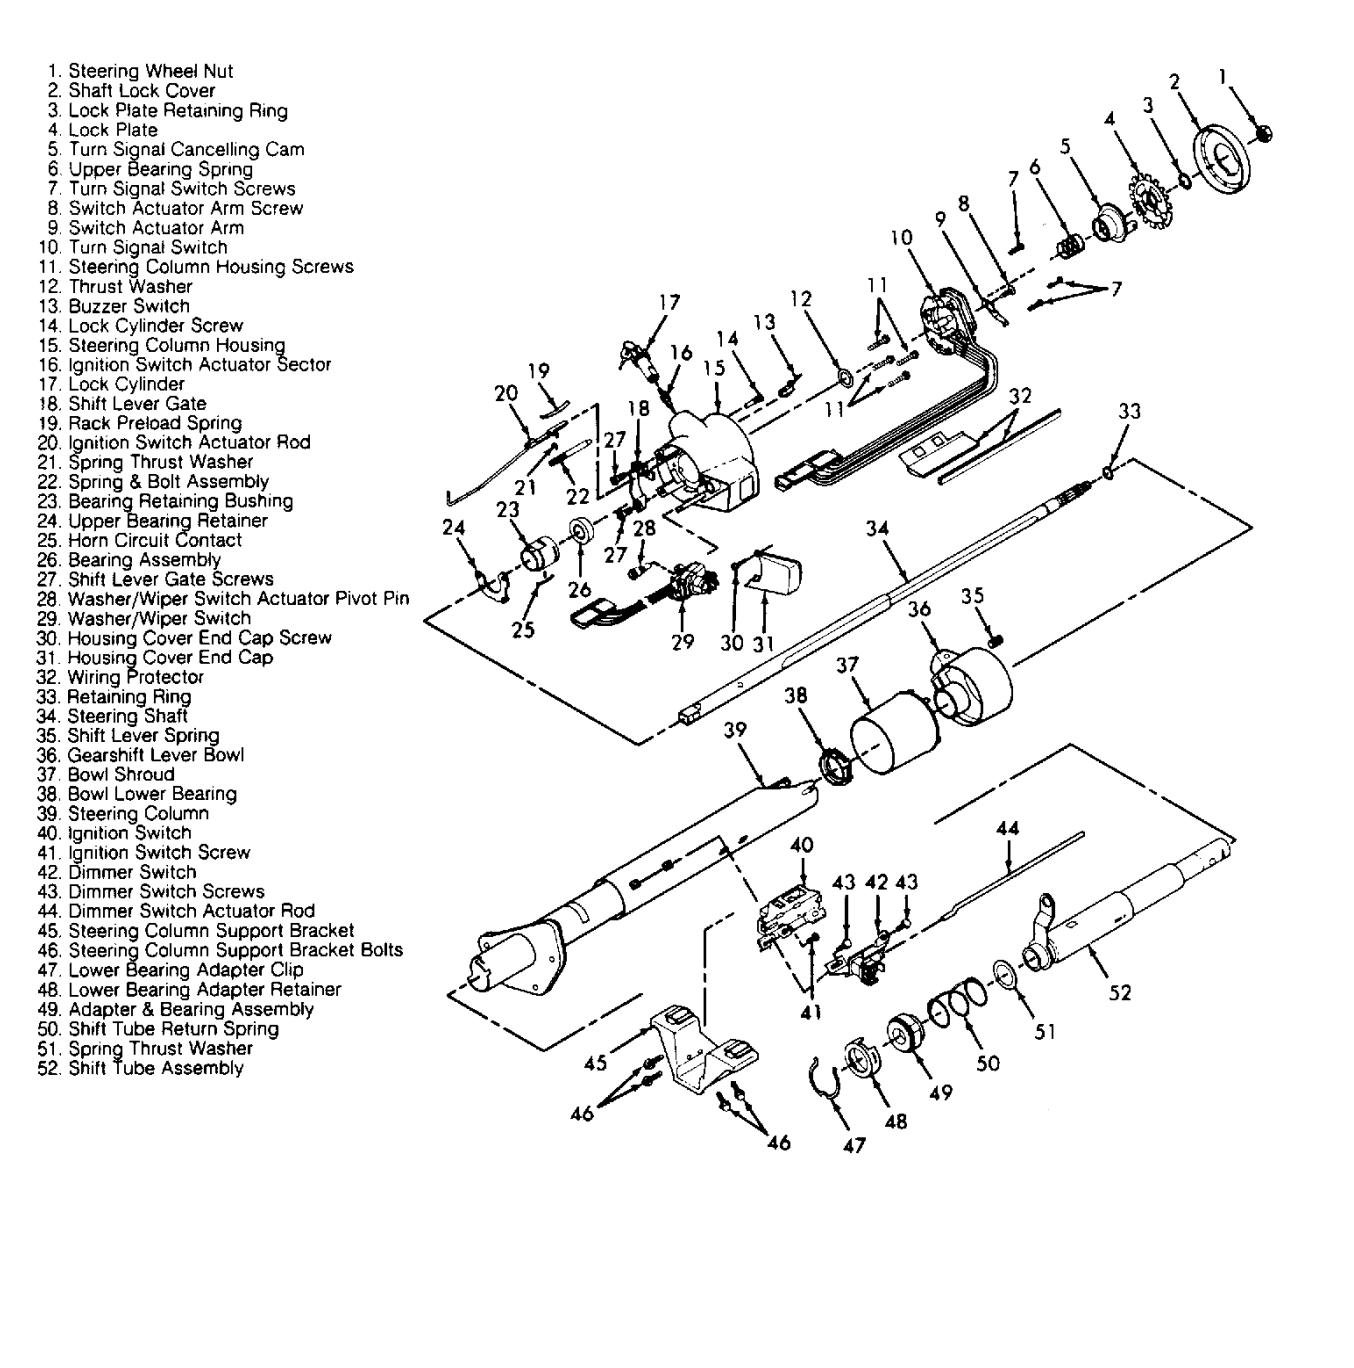 1994 chevy truck steering shaft diagram enthusiast wiring diagrams u2022 rh rasalibre co